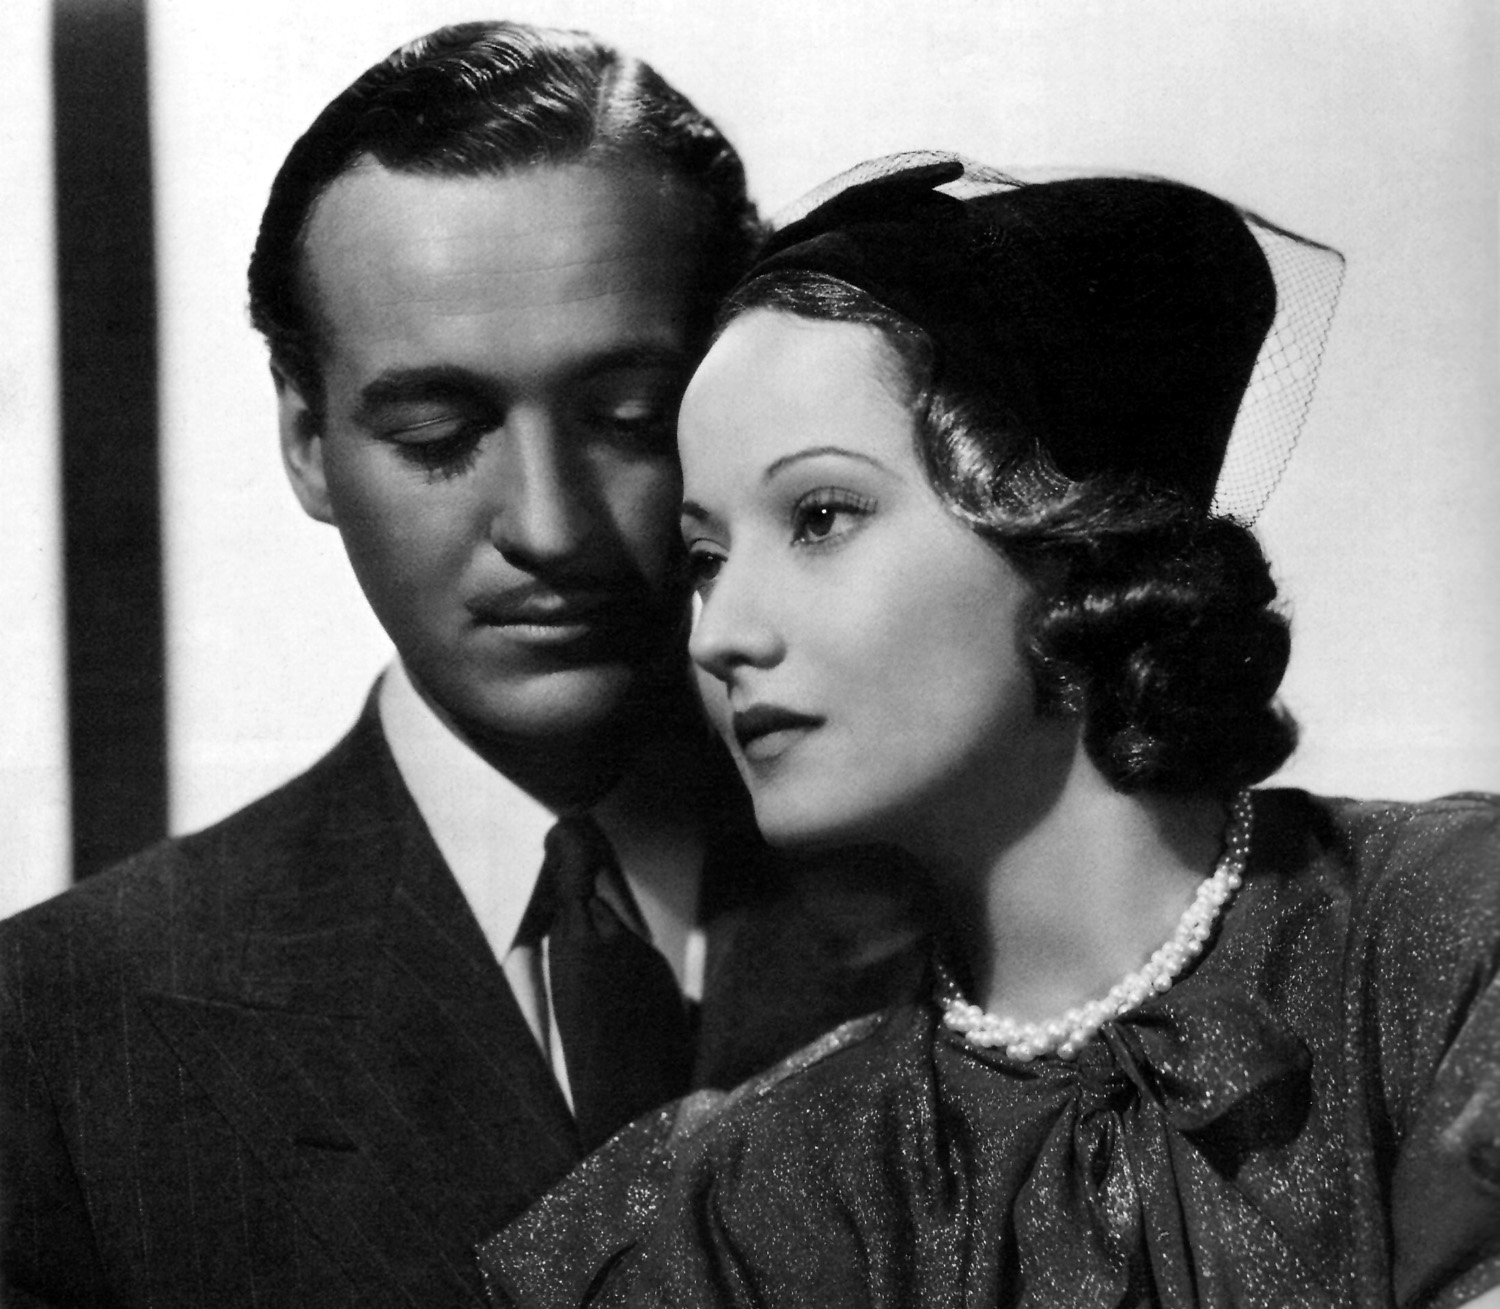 David Niven in Beloved Enemy With Merle Oberon